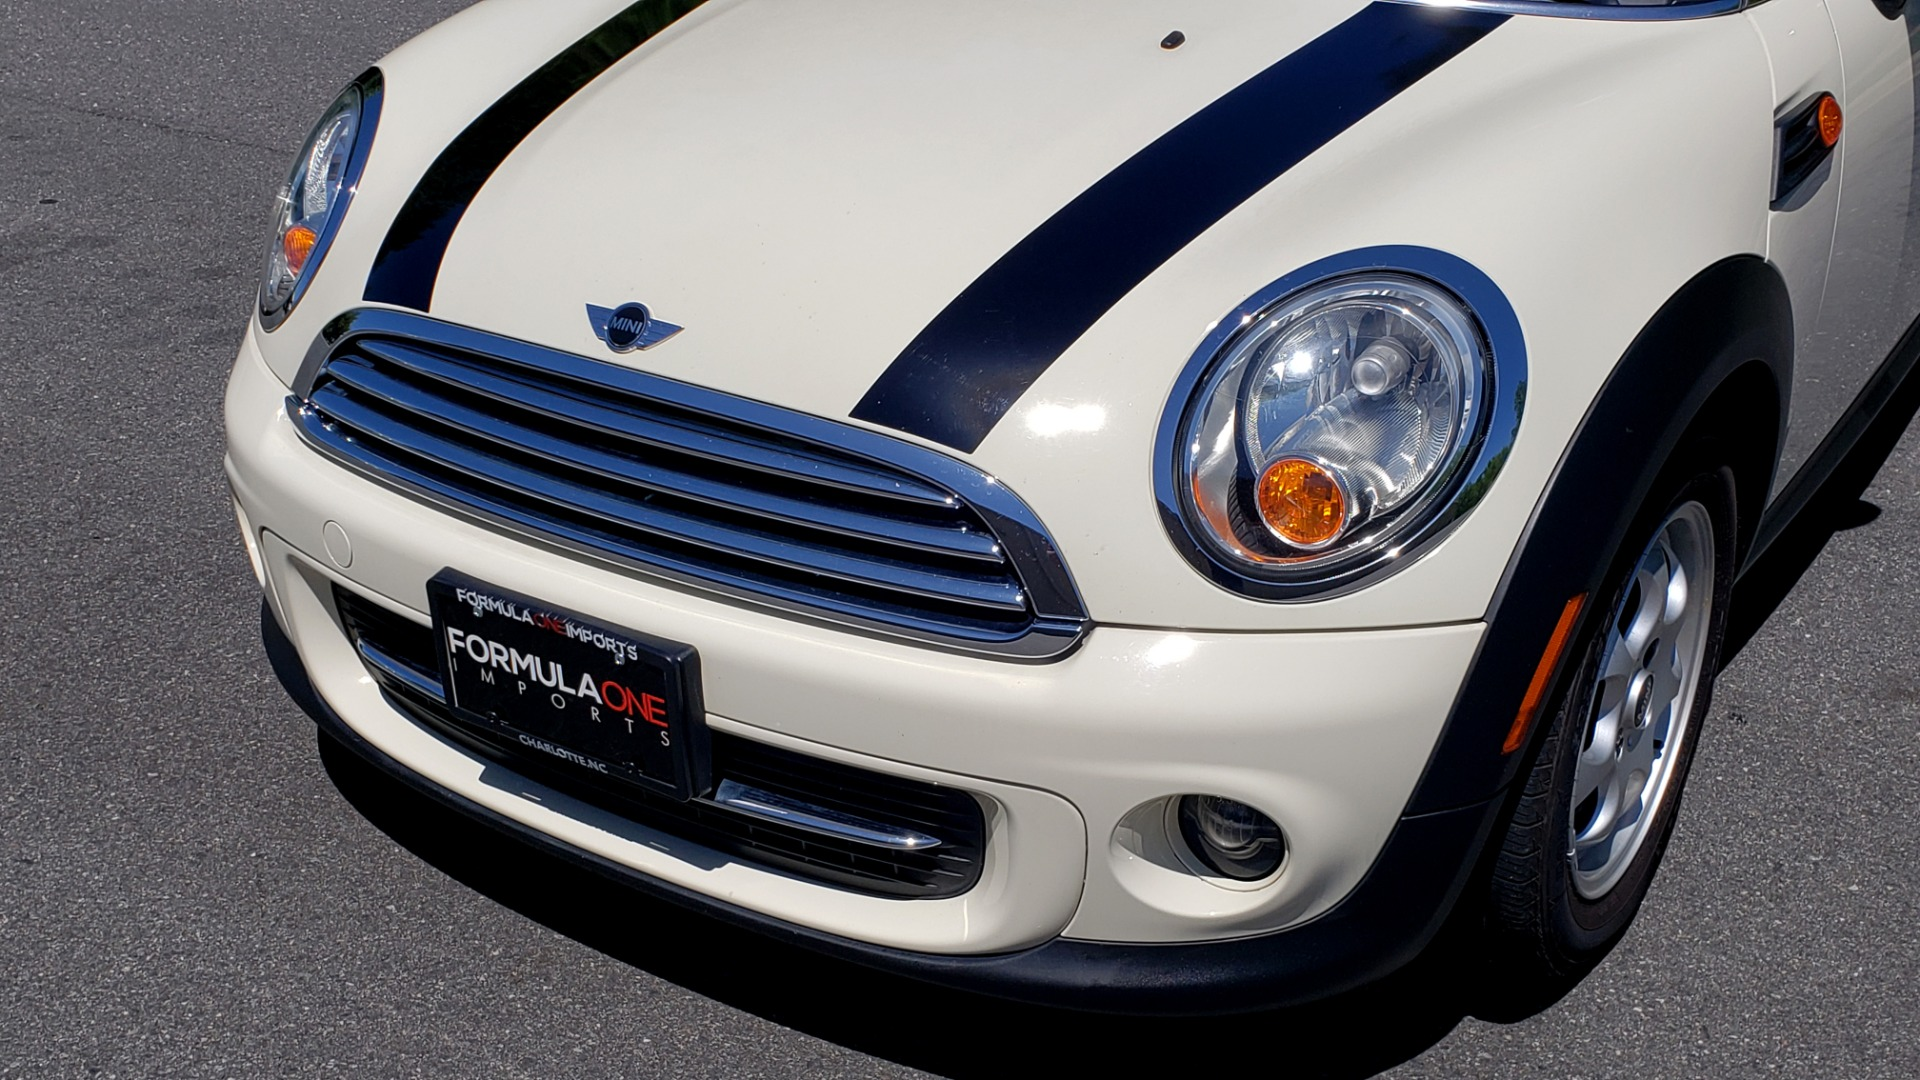 Used 2012 MINI COOPER HARDTOP 6-SPEED MANUAL / VERY CLEAN / 37 MPG for sale Sold at Formula Imports in Charlotte NC 28227 27